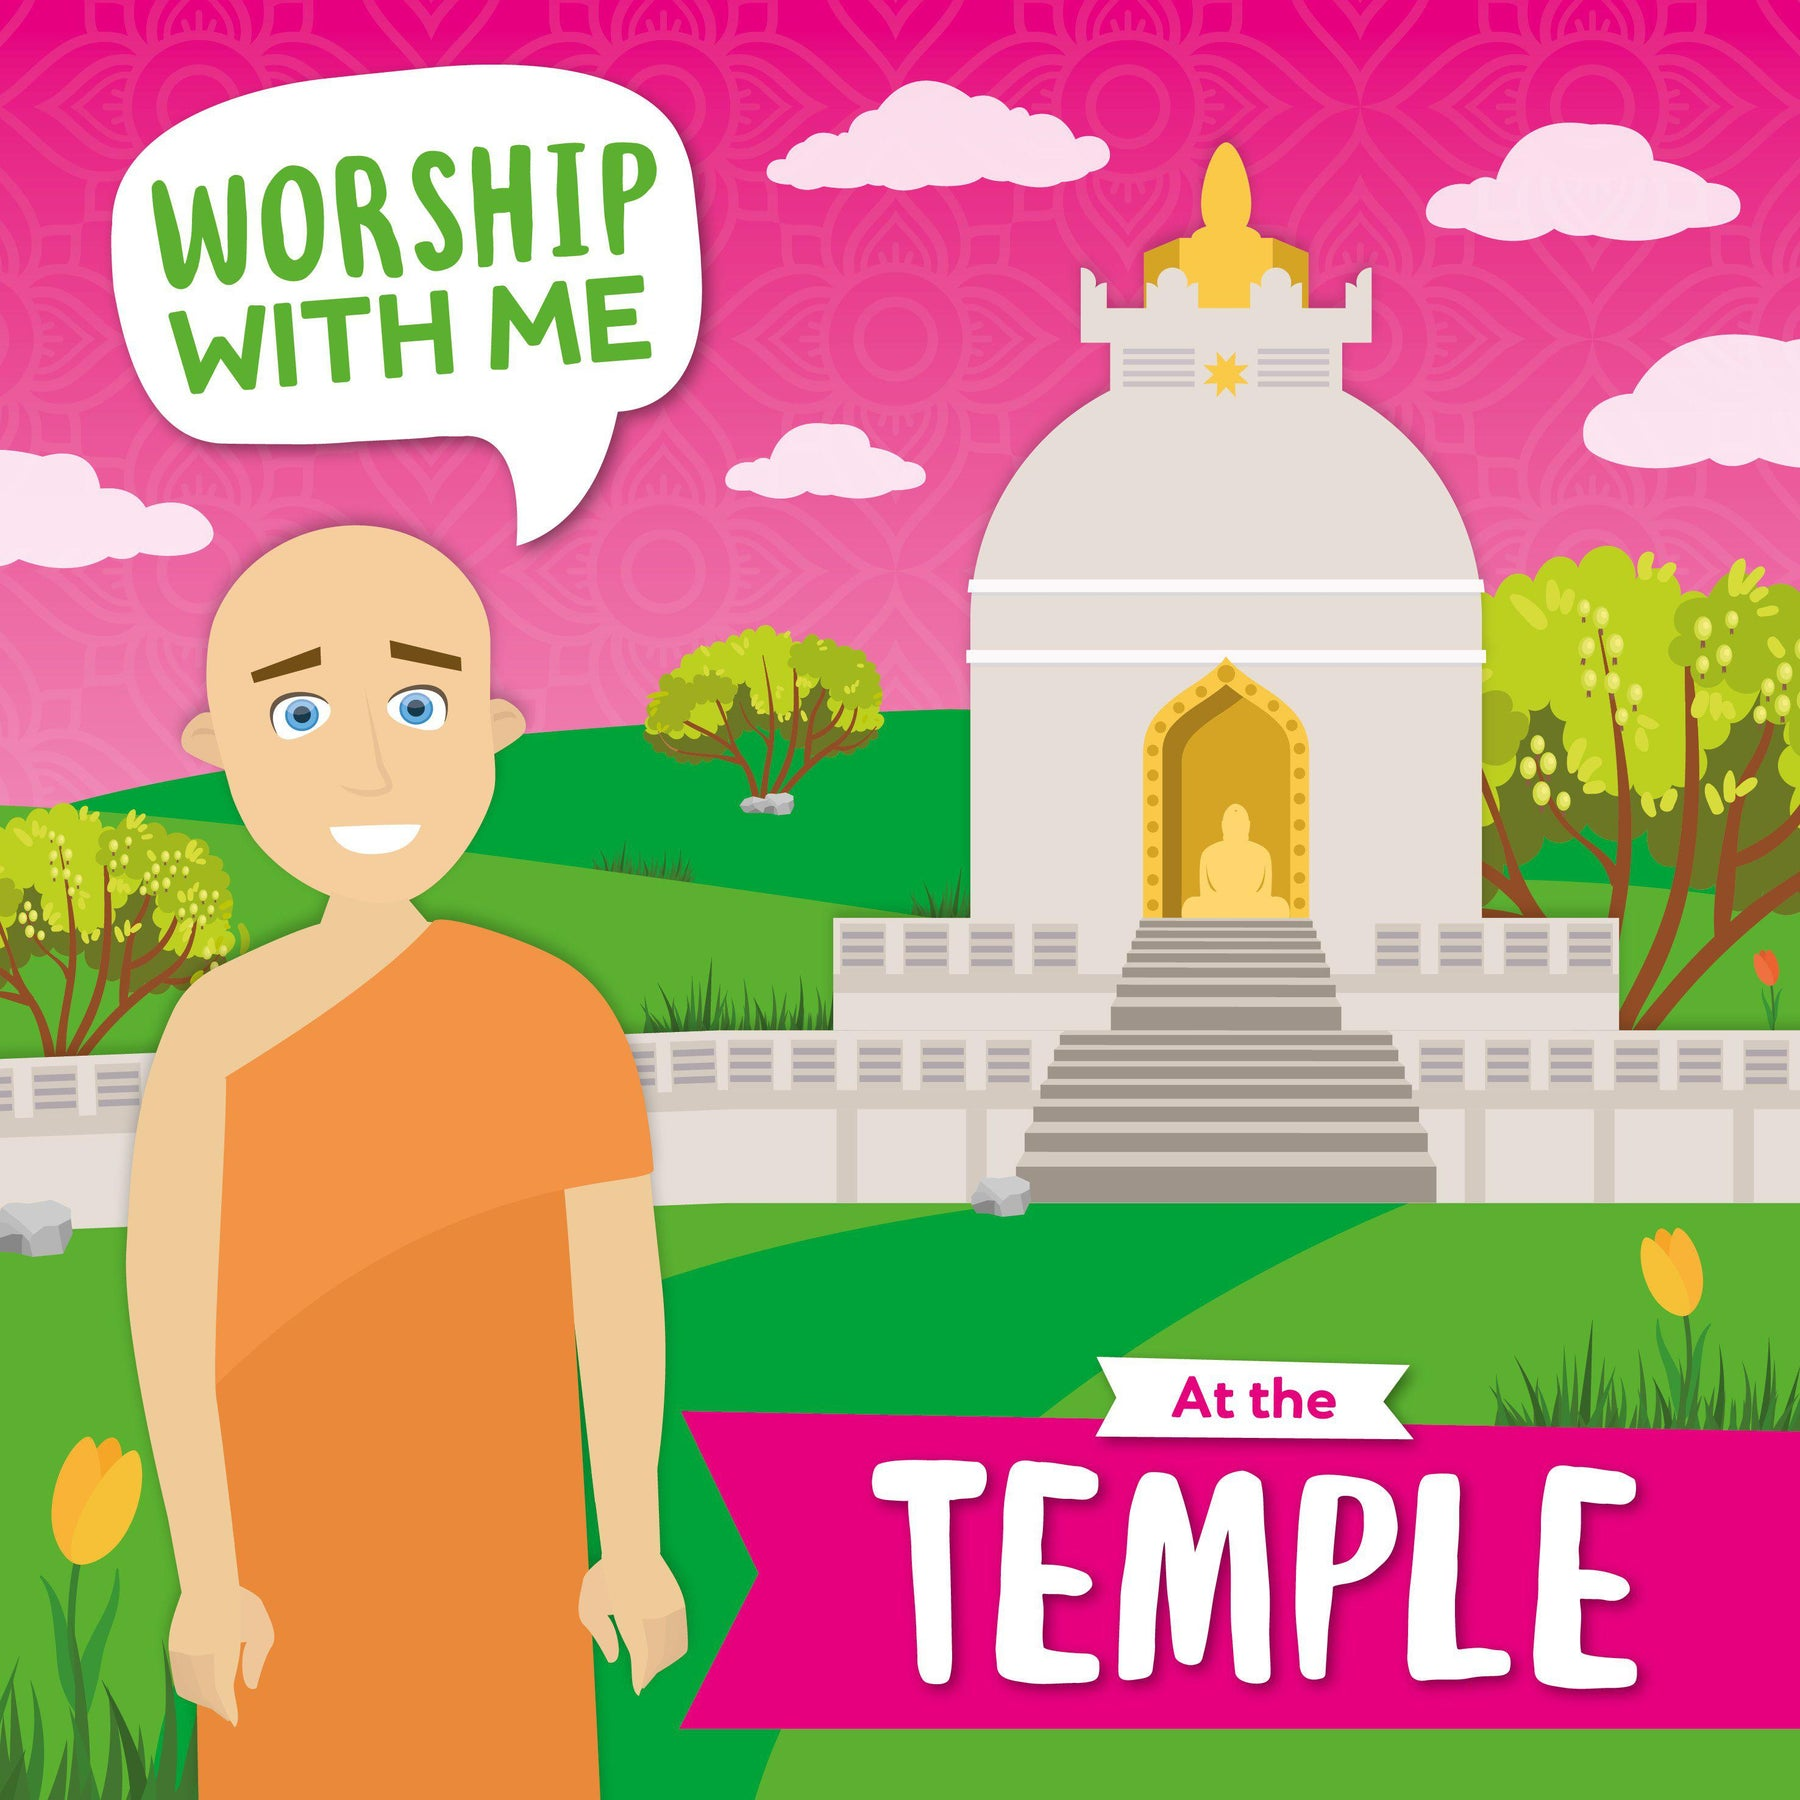 Worship with me, Temple, places of worship,